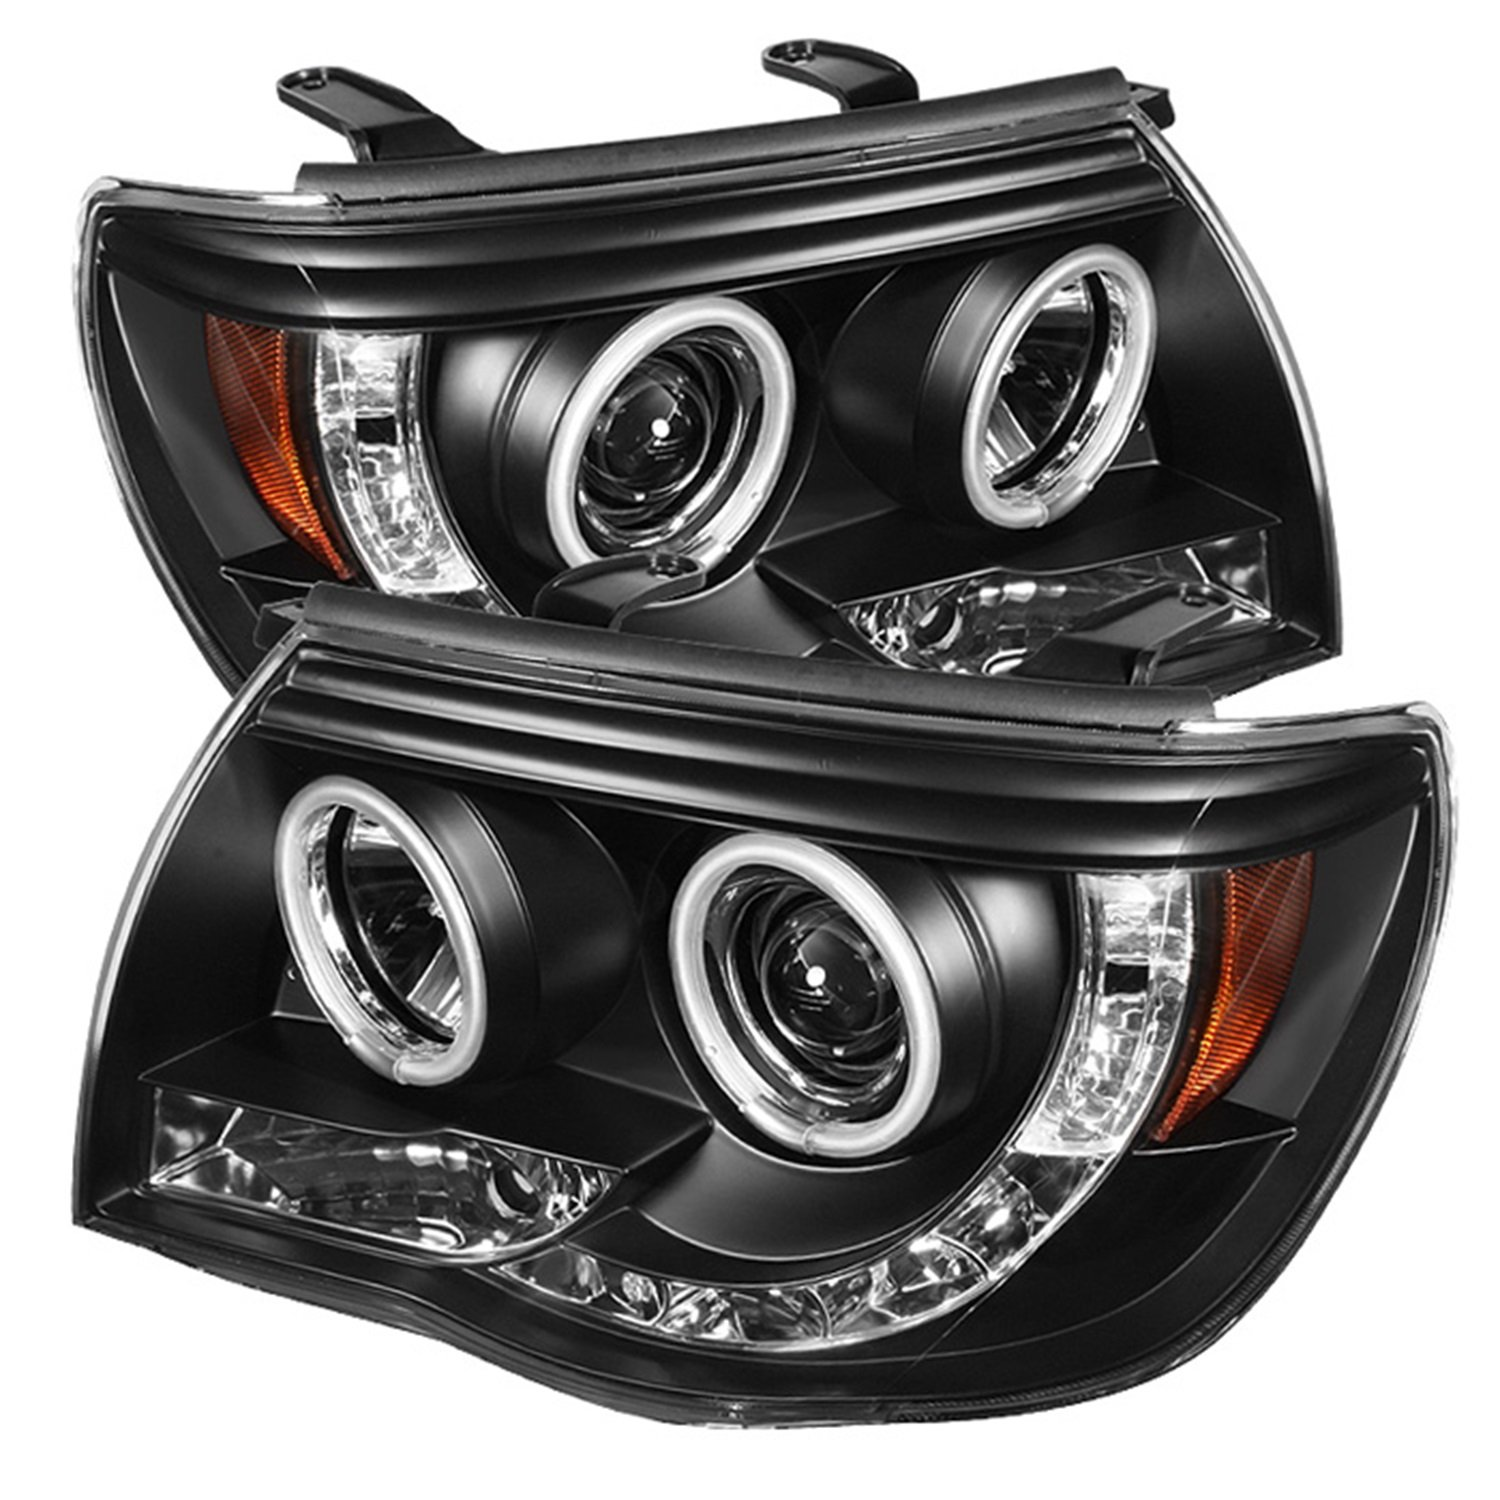 spyder halo led projector headlights wiring spyder auto wiring amazon com spyder auto toyota tacoma black ccfl led projector on spyder halo led projector headlights